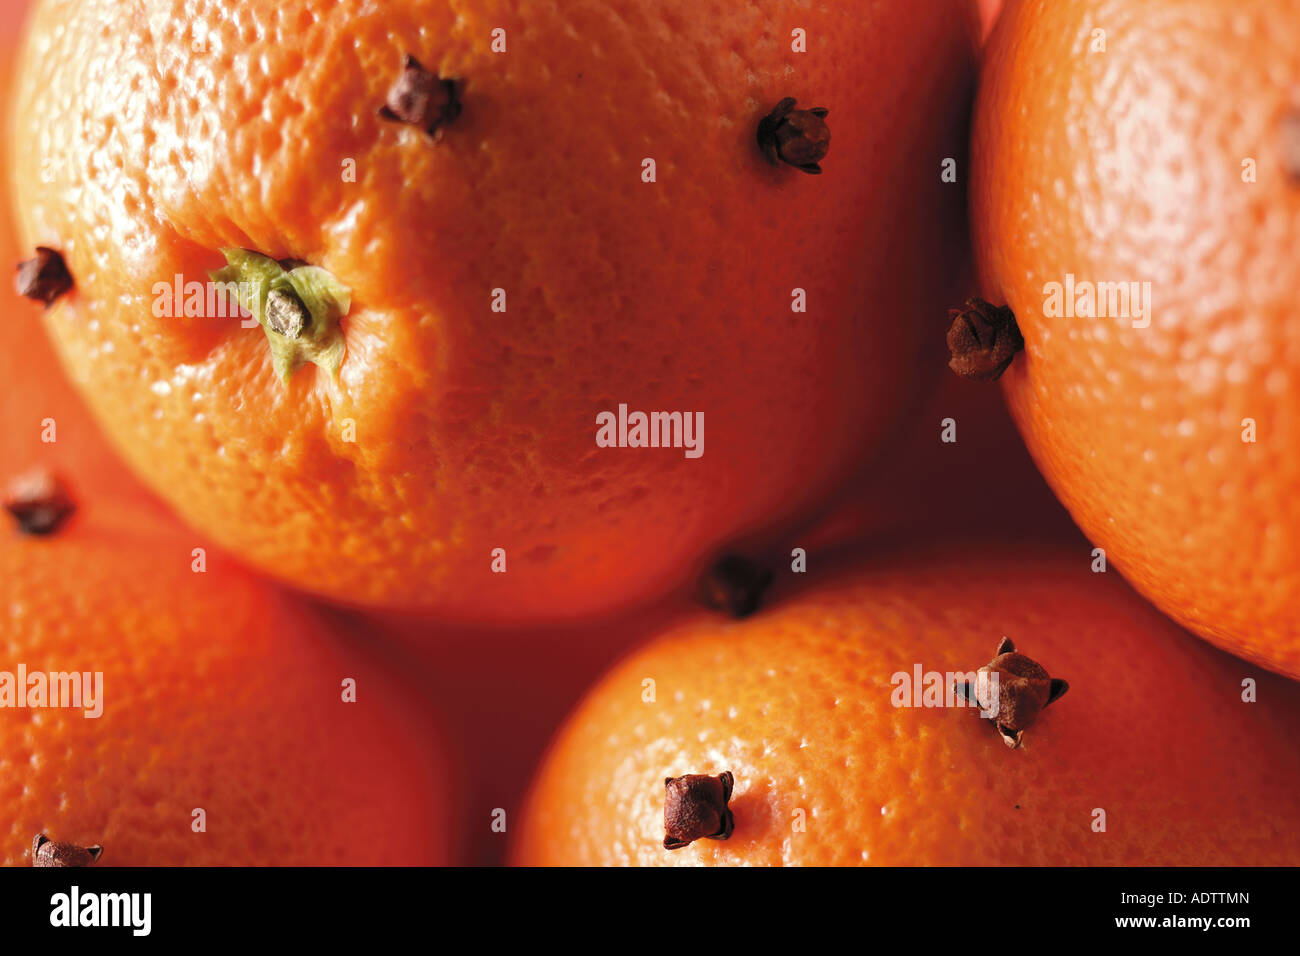 Whole oranges studded with cloves, close up filling frame - Stock Image